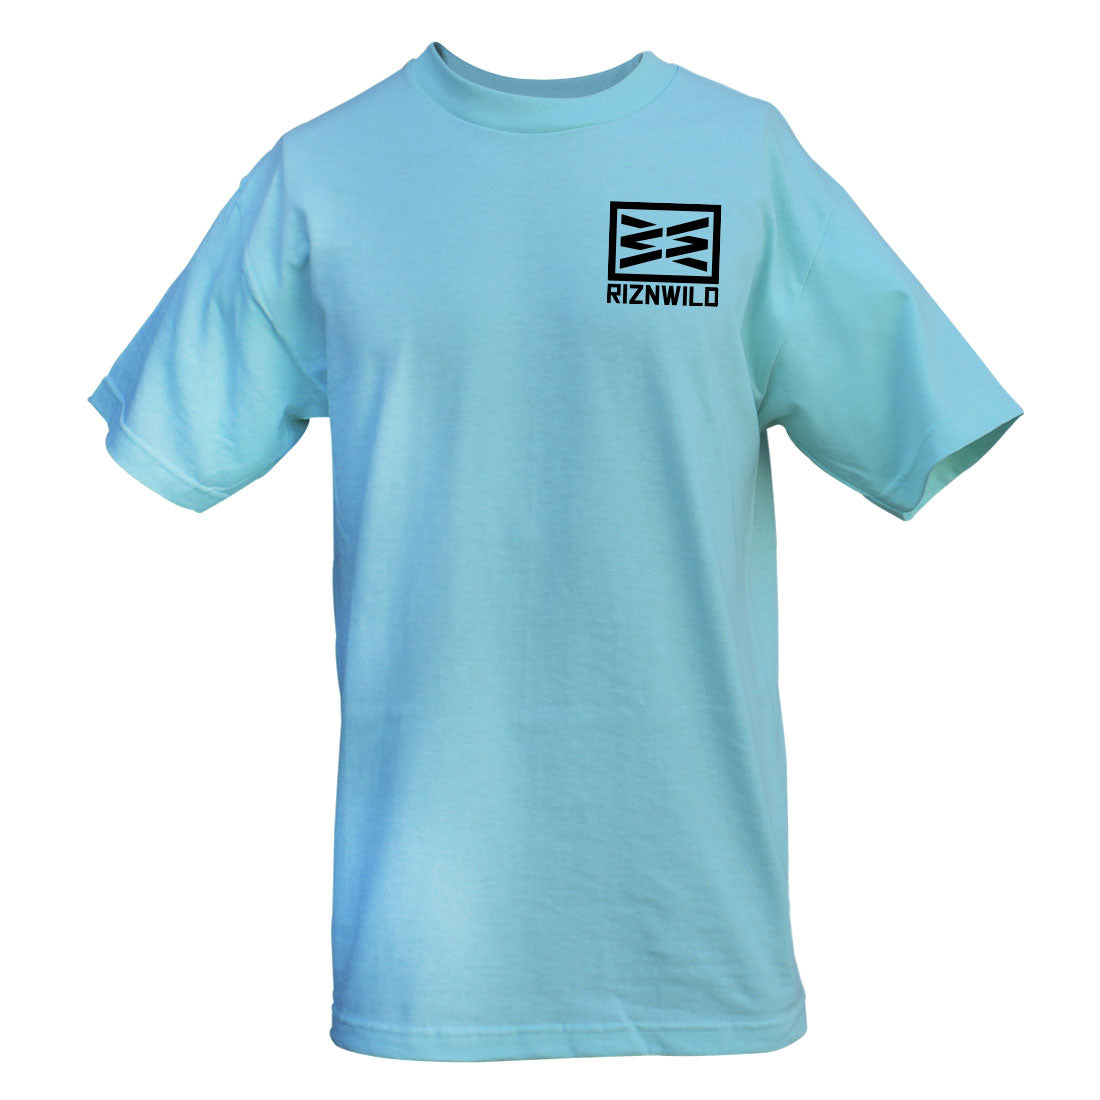 RIZNWILD | Men's tee shirt left chest logo celadon color